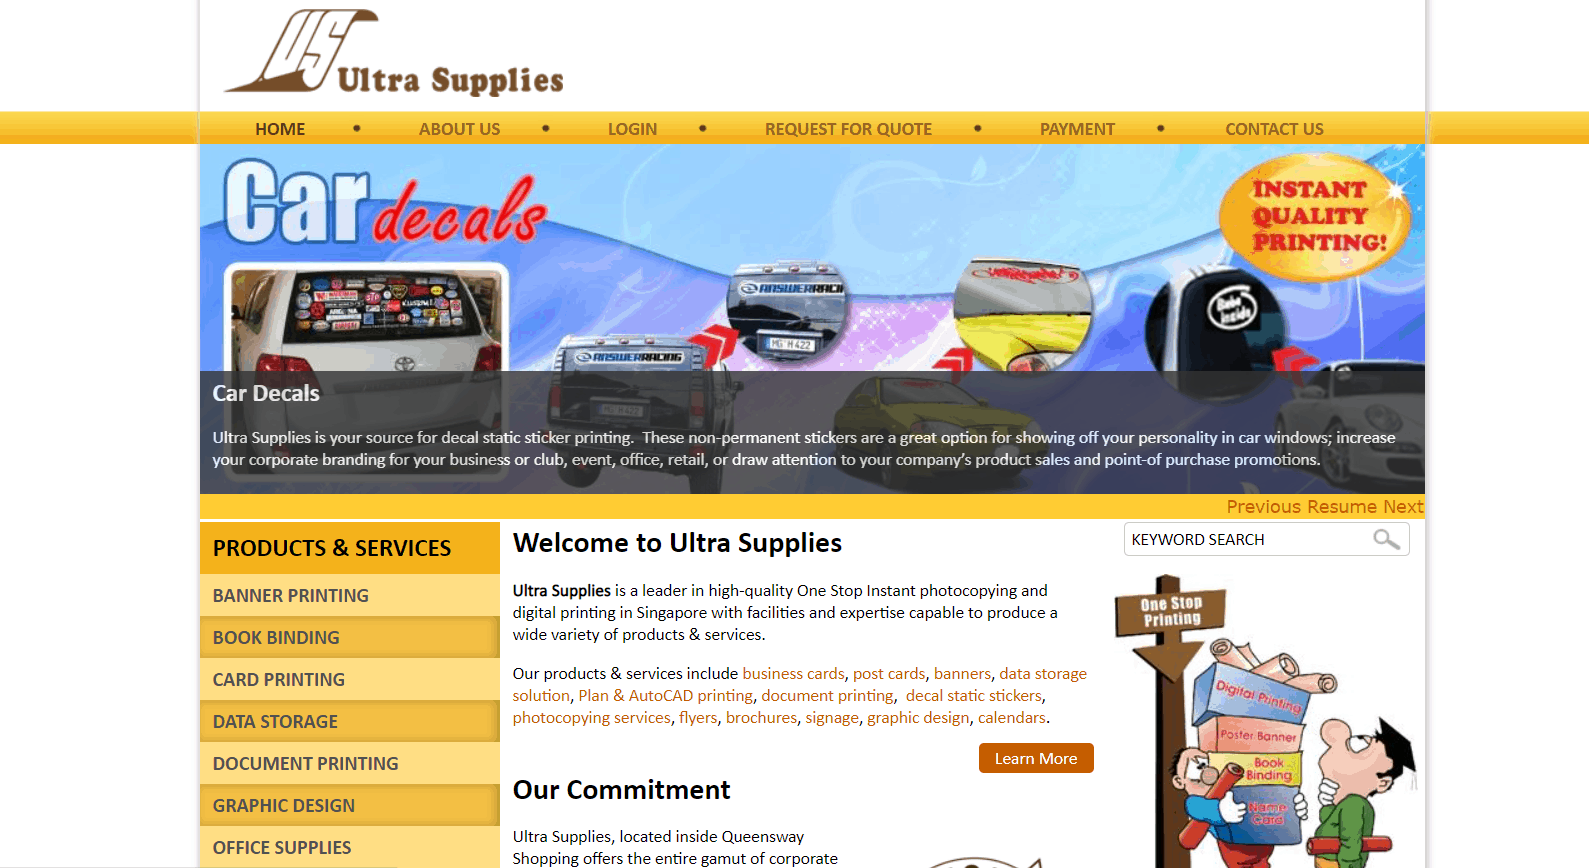 Ultra Supplies provides Online printing services Singapore,How much does it cost to print in Singapore?,Who has the best quality prints?,Which online photo printing is best quality?, BANNER PRINTING,BOOK BINDING,CARD PRINTING,DATA STORAGE,DOCUMENT PRINTING,GRAPHIC DESIGN,OFFICE SUPPLIES,OFFSET PRINTING,PHOTOCOPYING,PLAN PRINTING,POSTER,STICKER